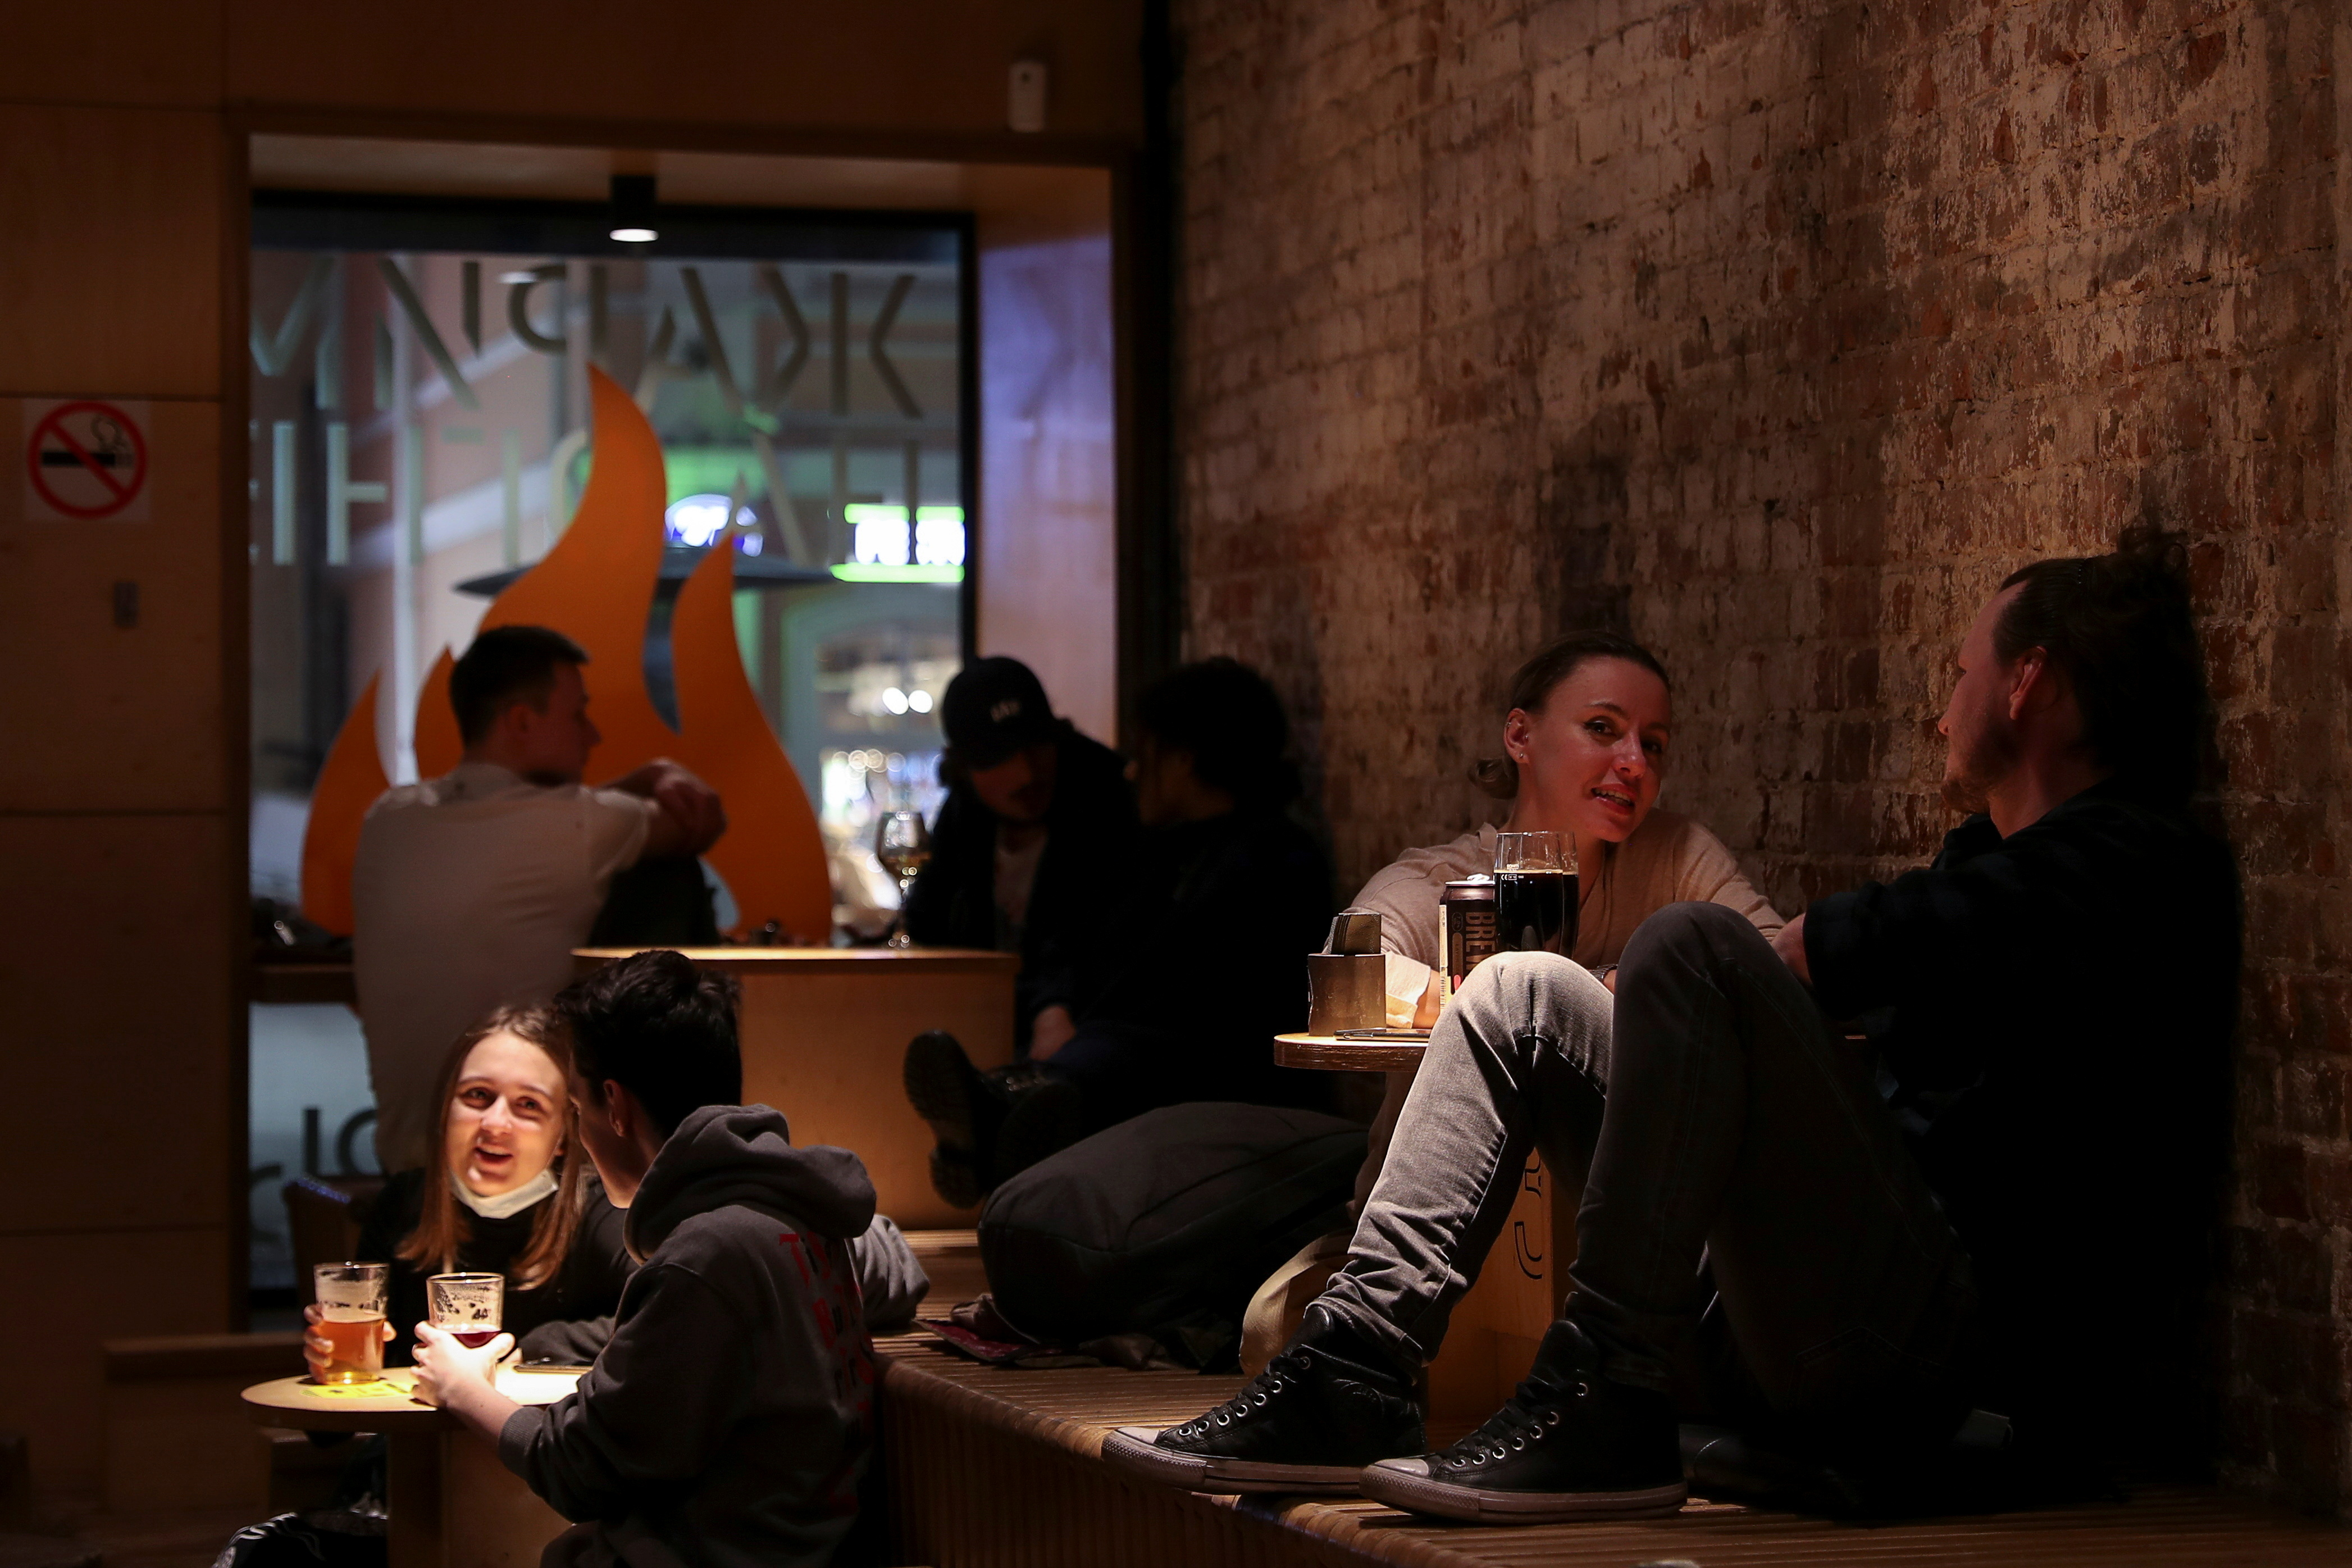 Customers sit at tables in Parka Bar in Moscow, Russia November 12, 2020. The city authorities recently ordered bars, restaurants and nightclubs to close at 11 pm amid the outbreak of the coronavirus disease (COVID-19). REUTERS/Evgenia Novozhenina